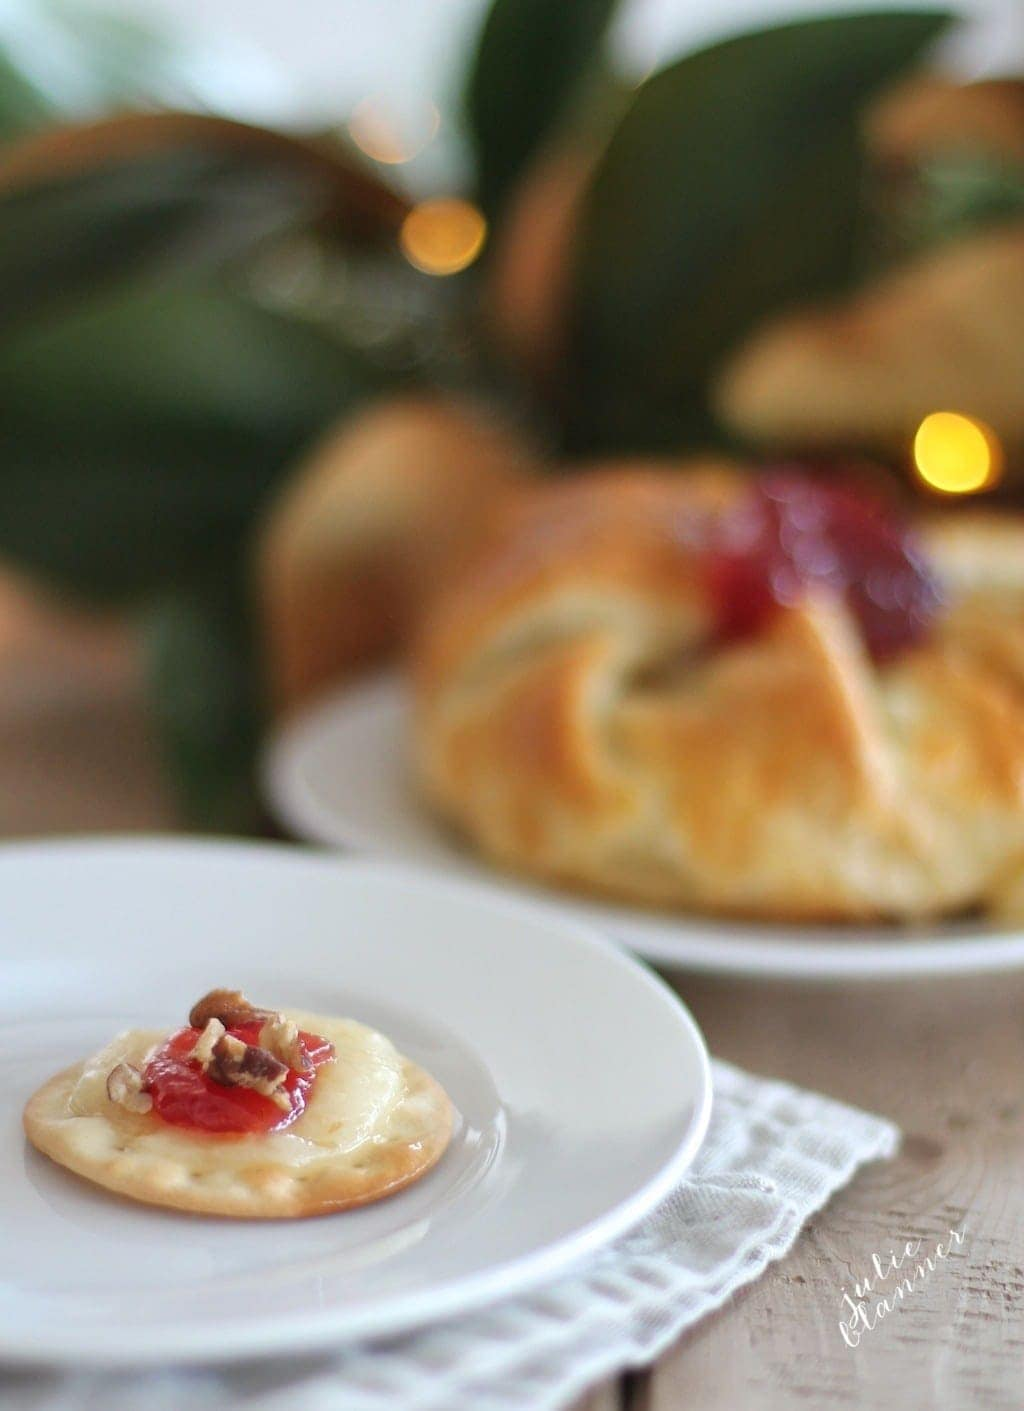 baked brie as thanksgiving menu items